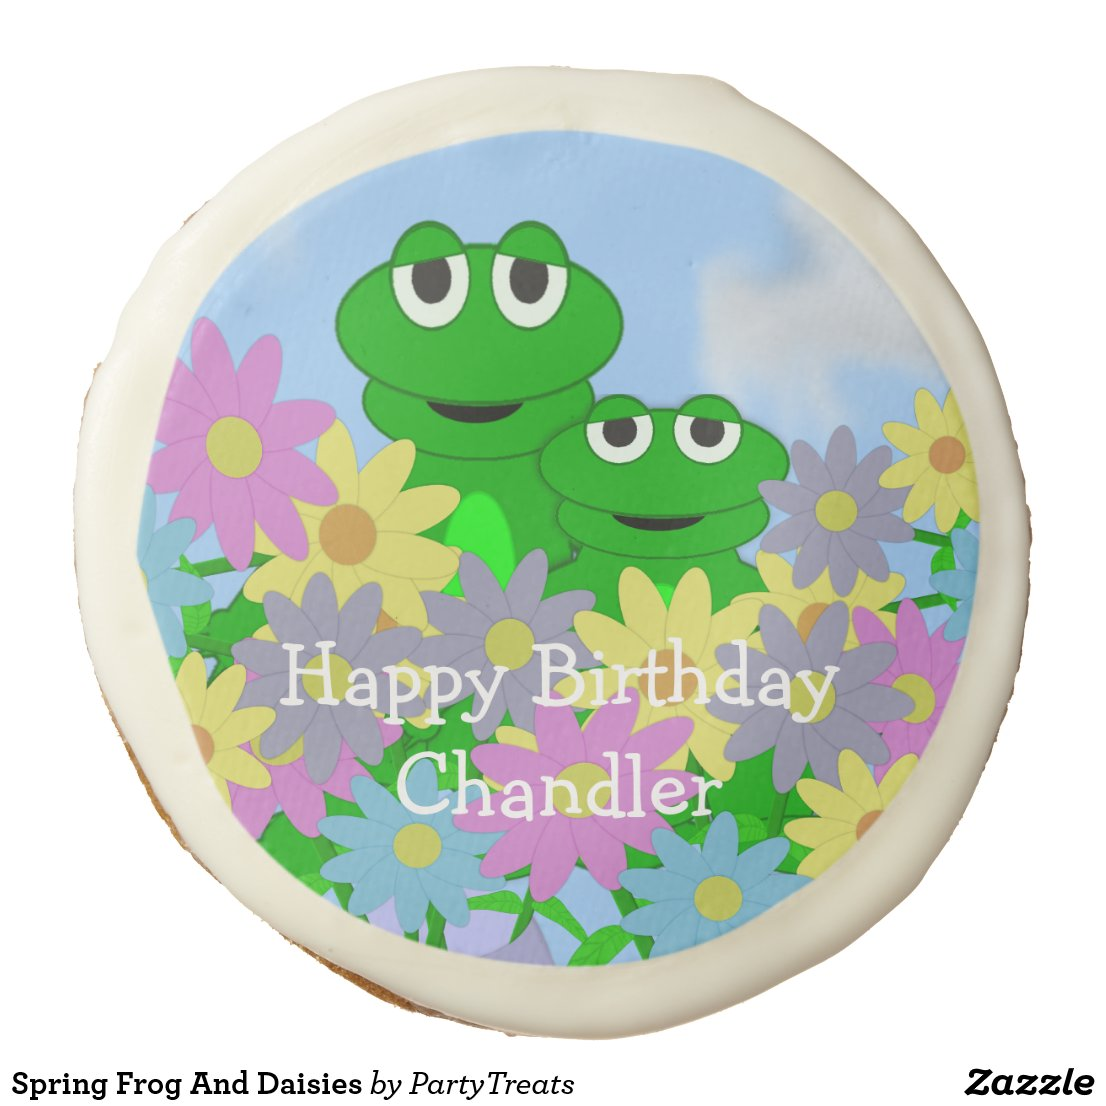 Spring Frog And Daisies Sugar Cookie